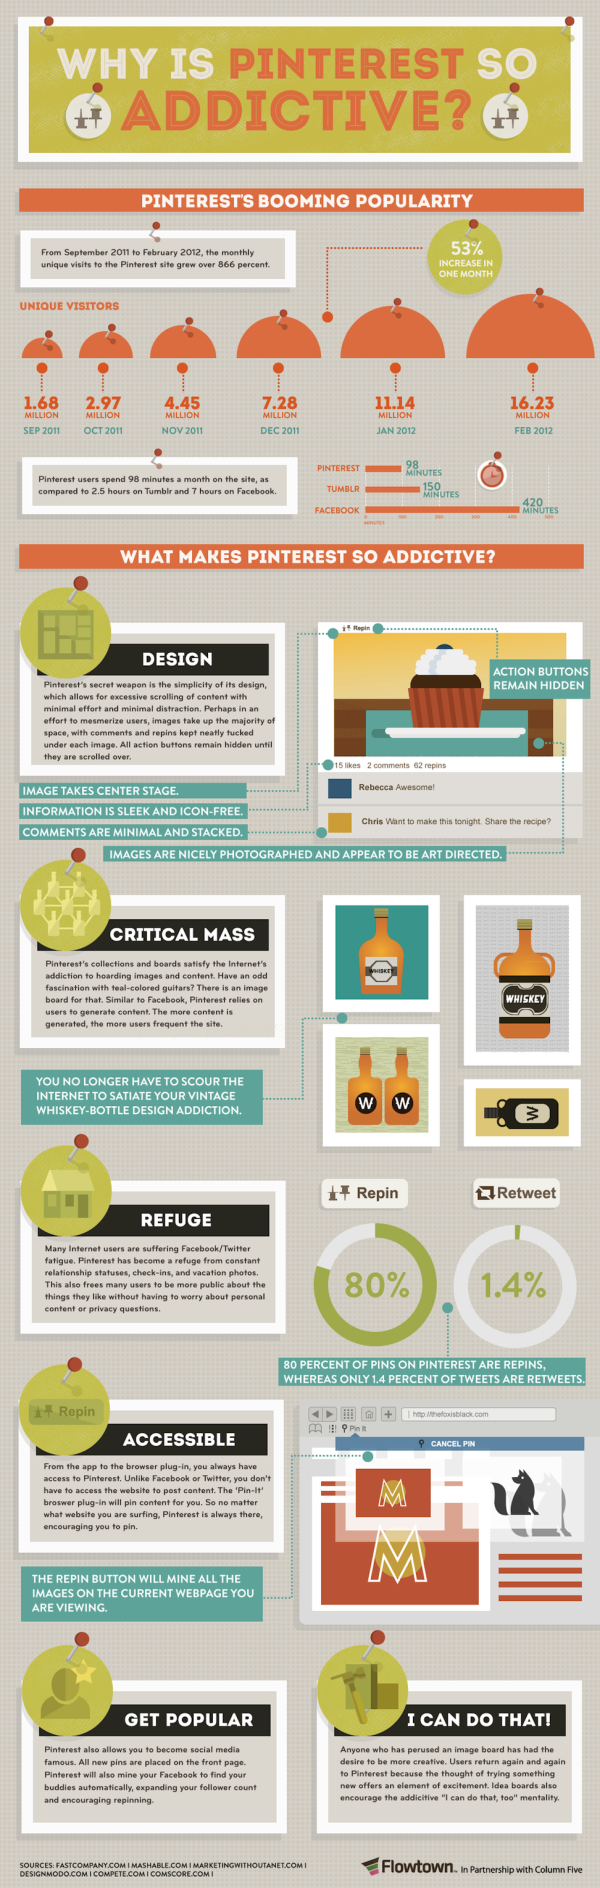 Why is #Pinterest addictive #SMM #Infographic